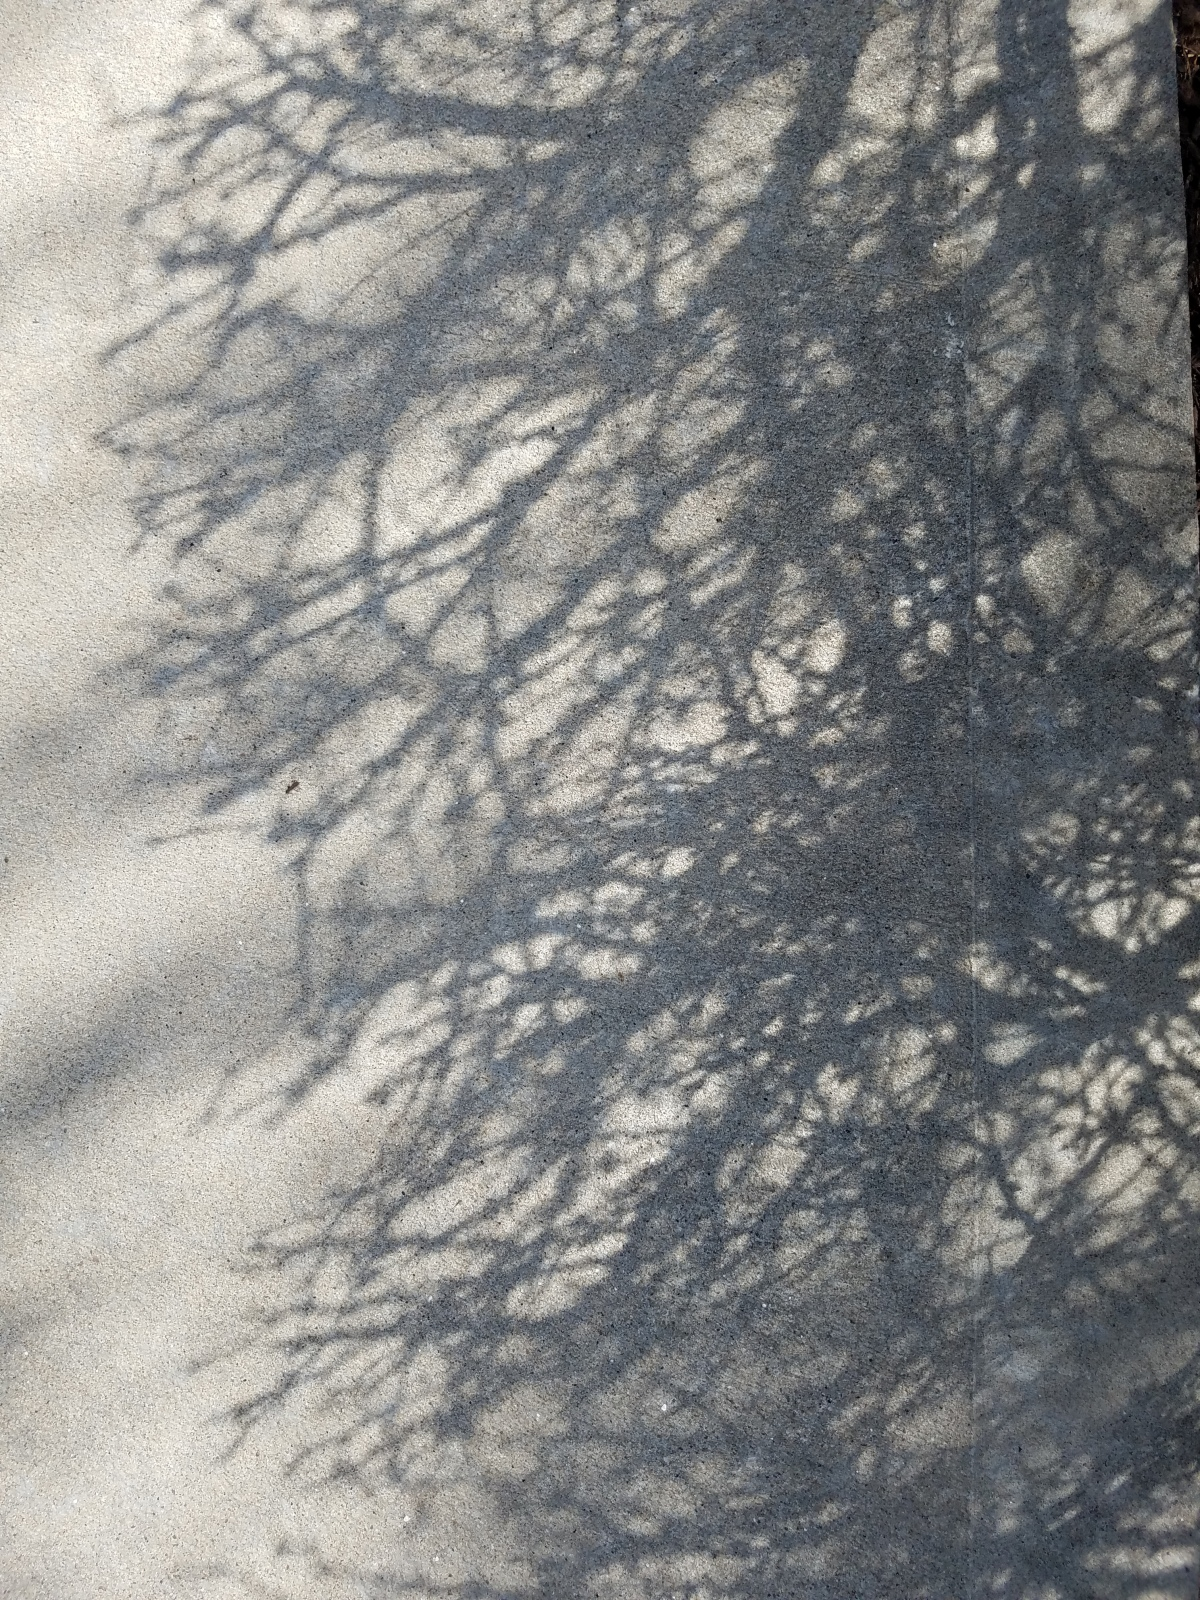 Branch Shadows